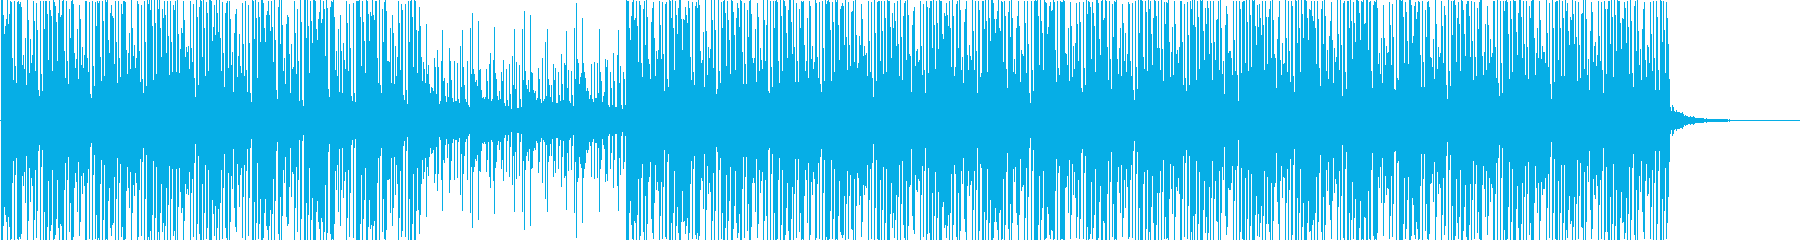 80s-90s style electronic music's reproduced waveform